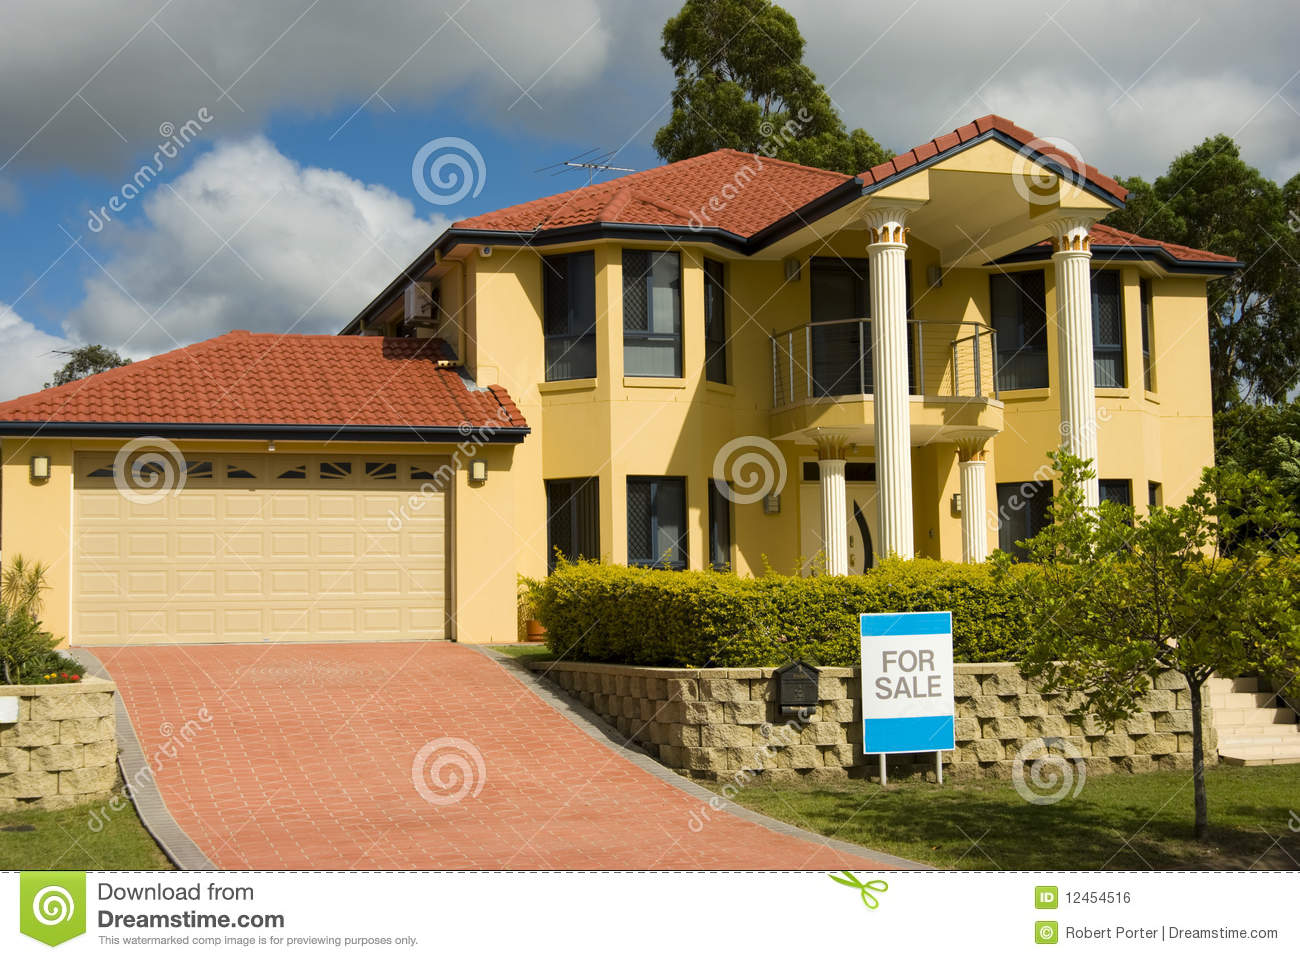 modern house for sale royalty free stock image image 12454516